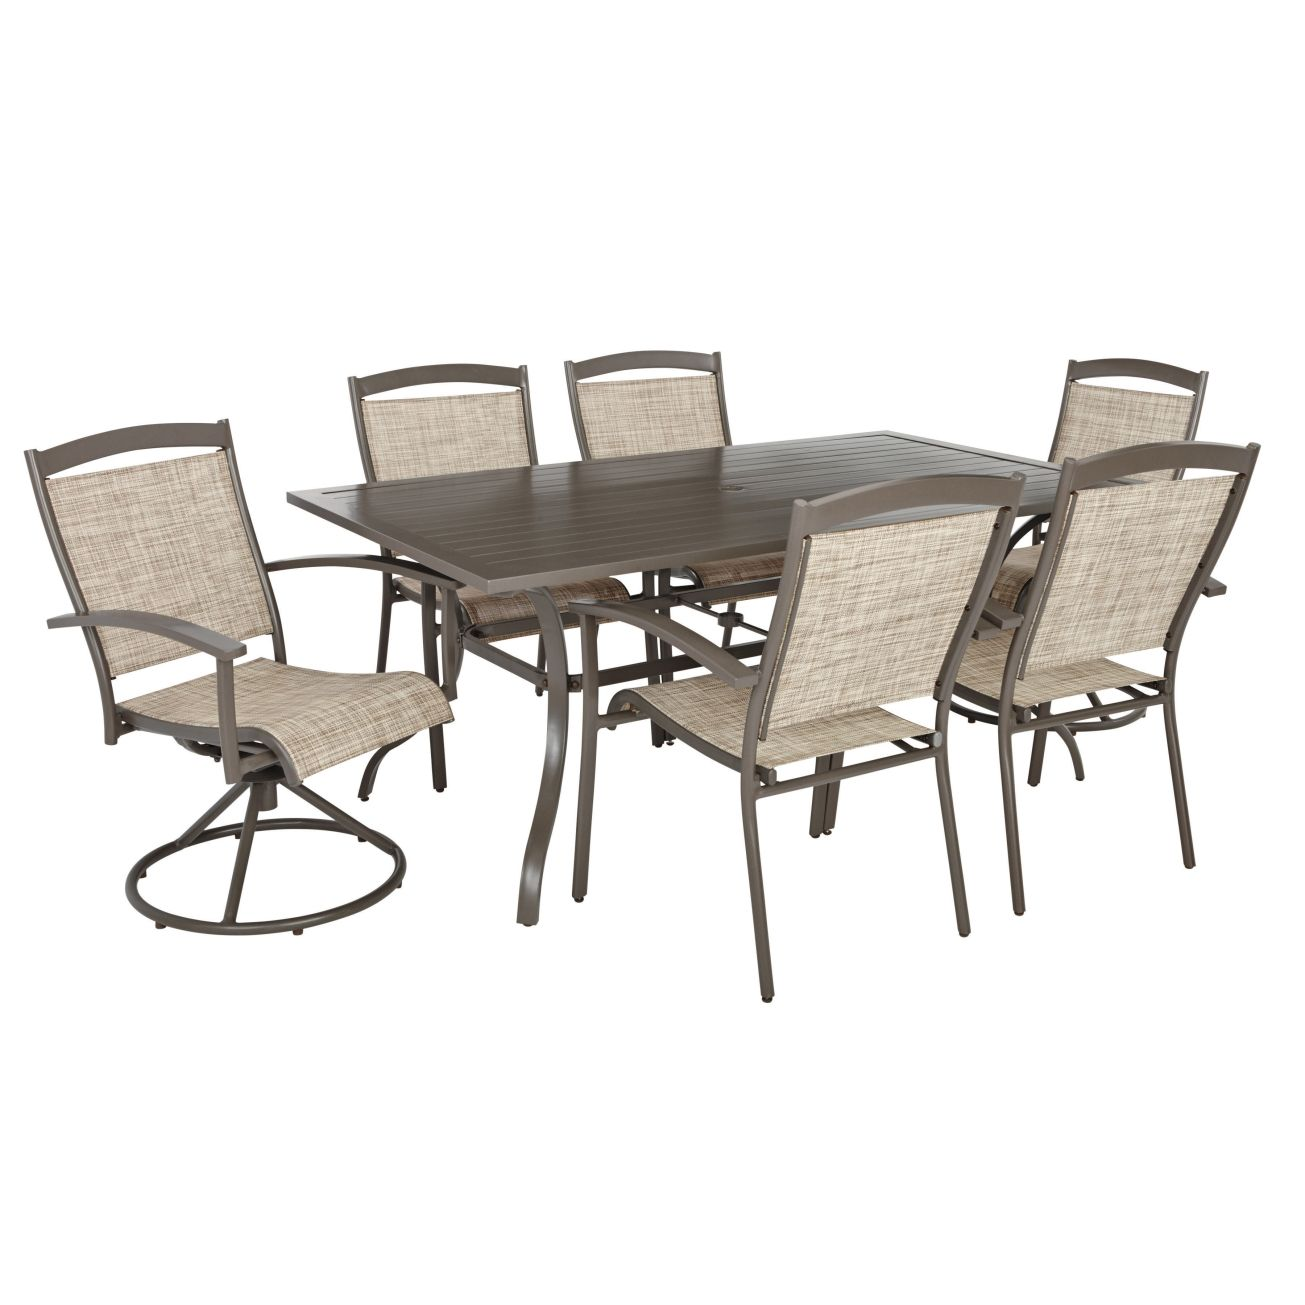 Living Accents Colma Dining Set 7 pc. All Patio